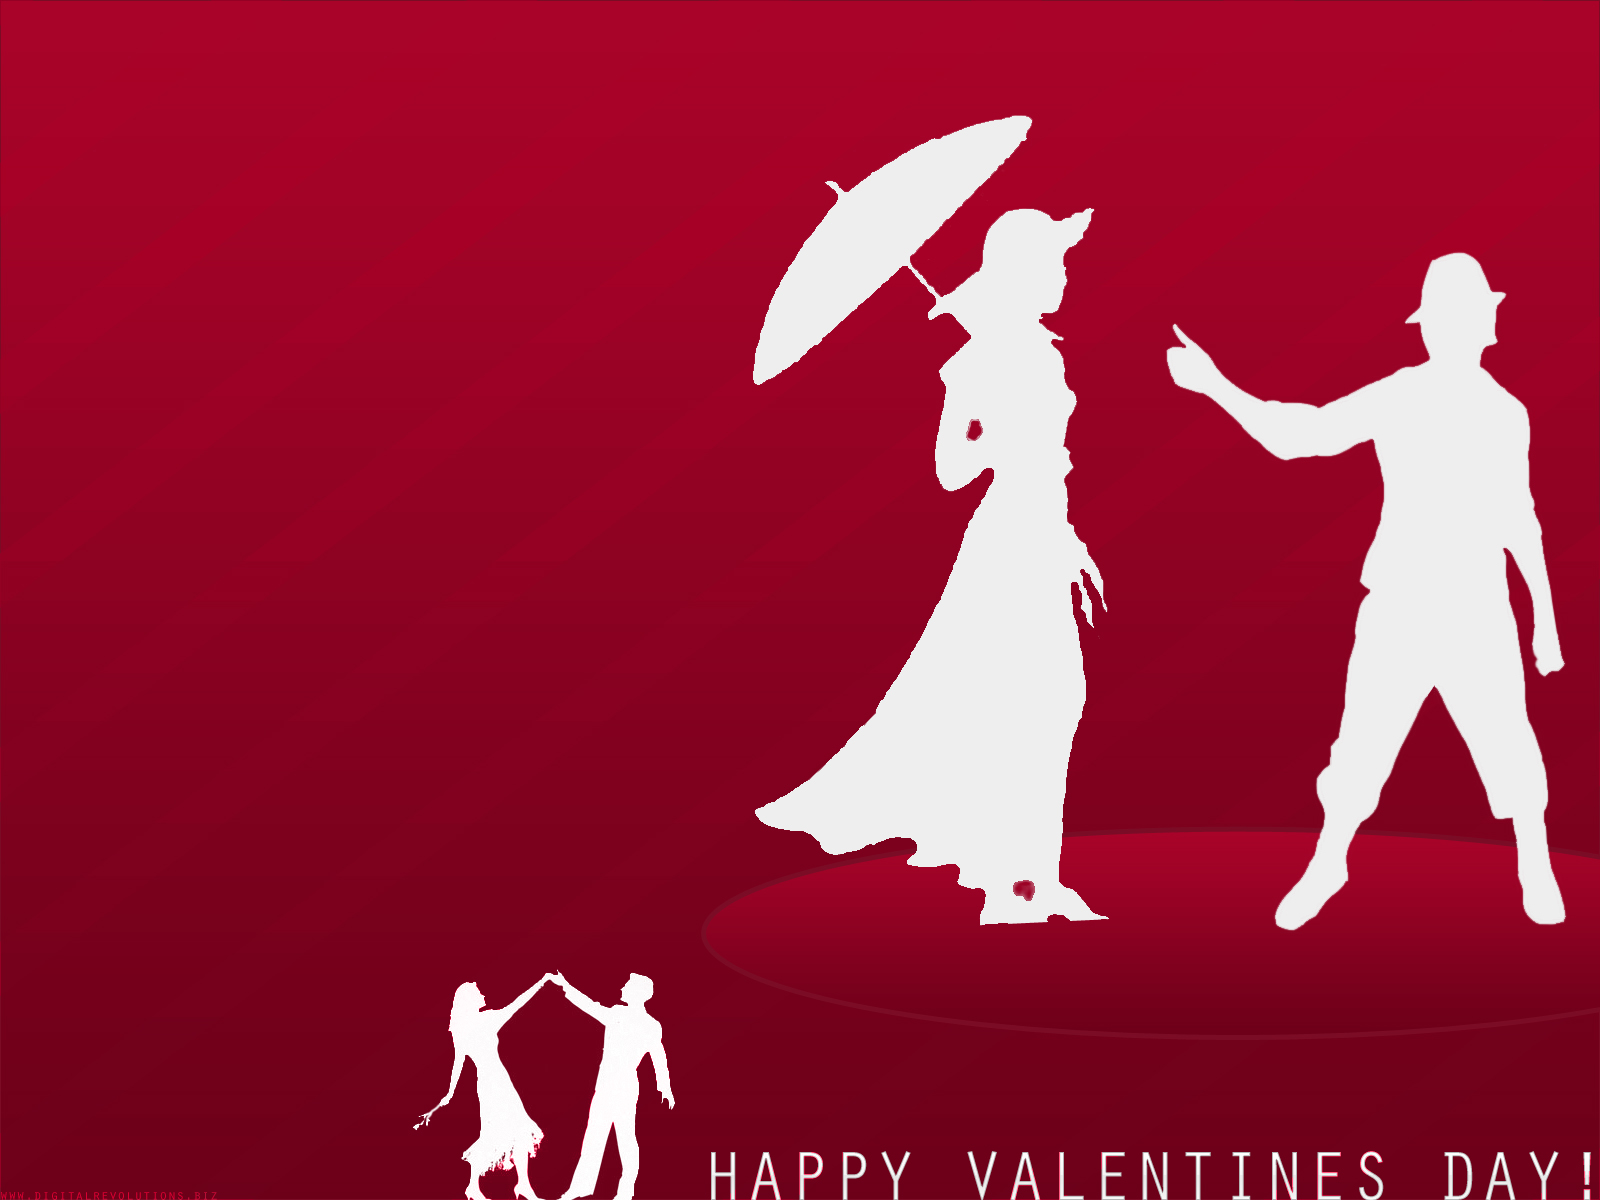 valentines day wallpaper free hd